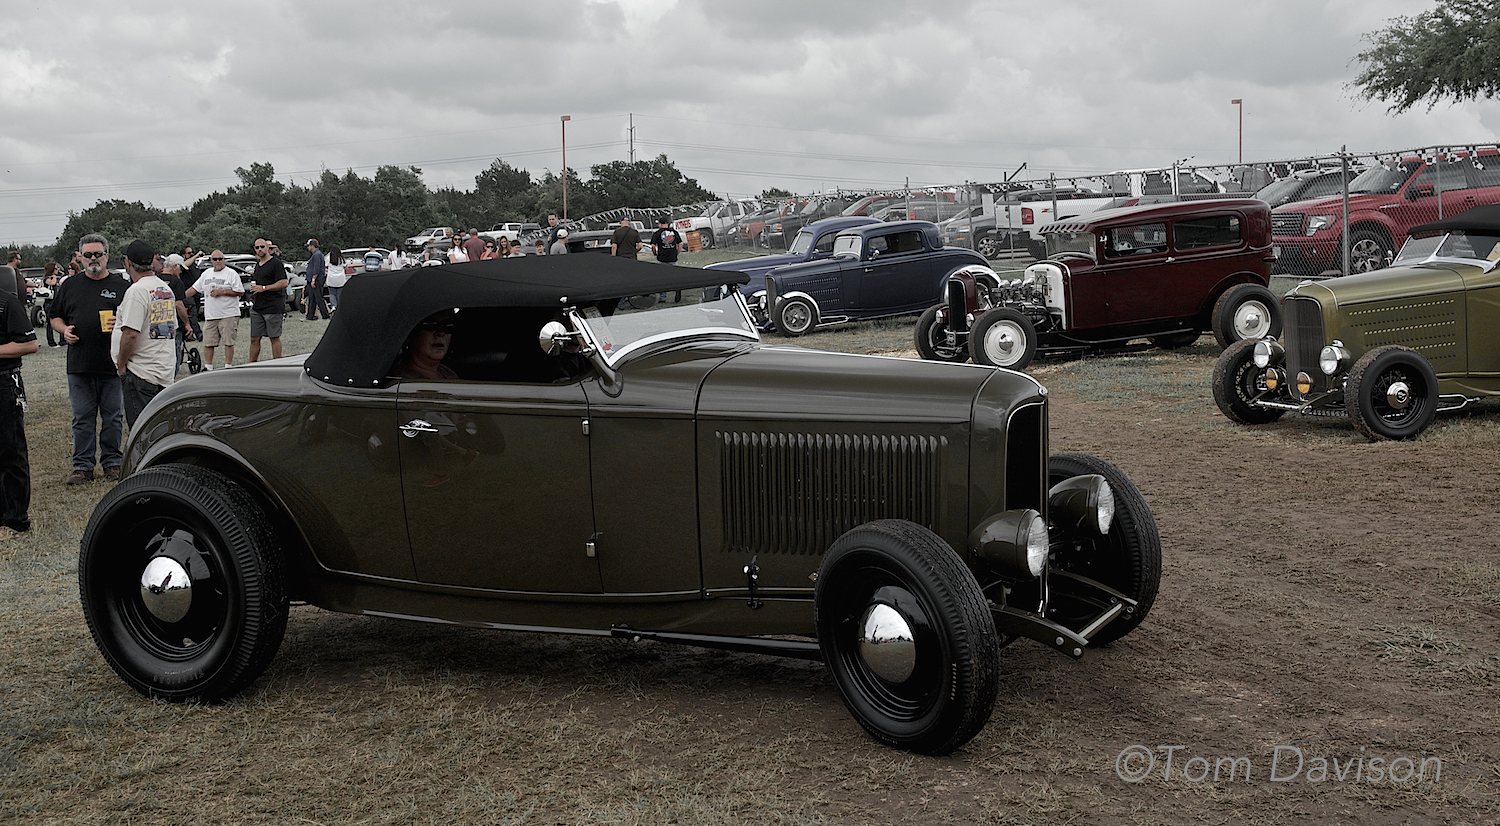 Another 32 Ford Roadster, the Deuce as it is known by hot rodders. It was driven to the Lonestar Roundup from San Francisco along with 25 other cars in a caravan (must have been quite a site for folks along the road!!).